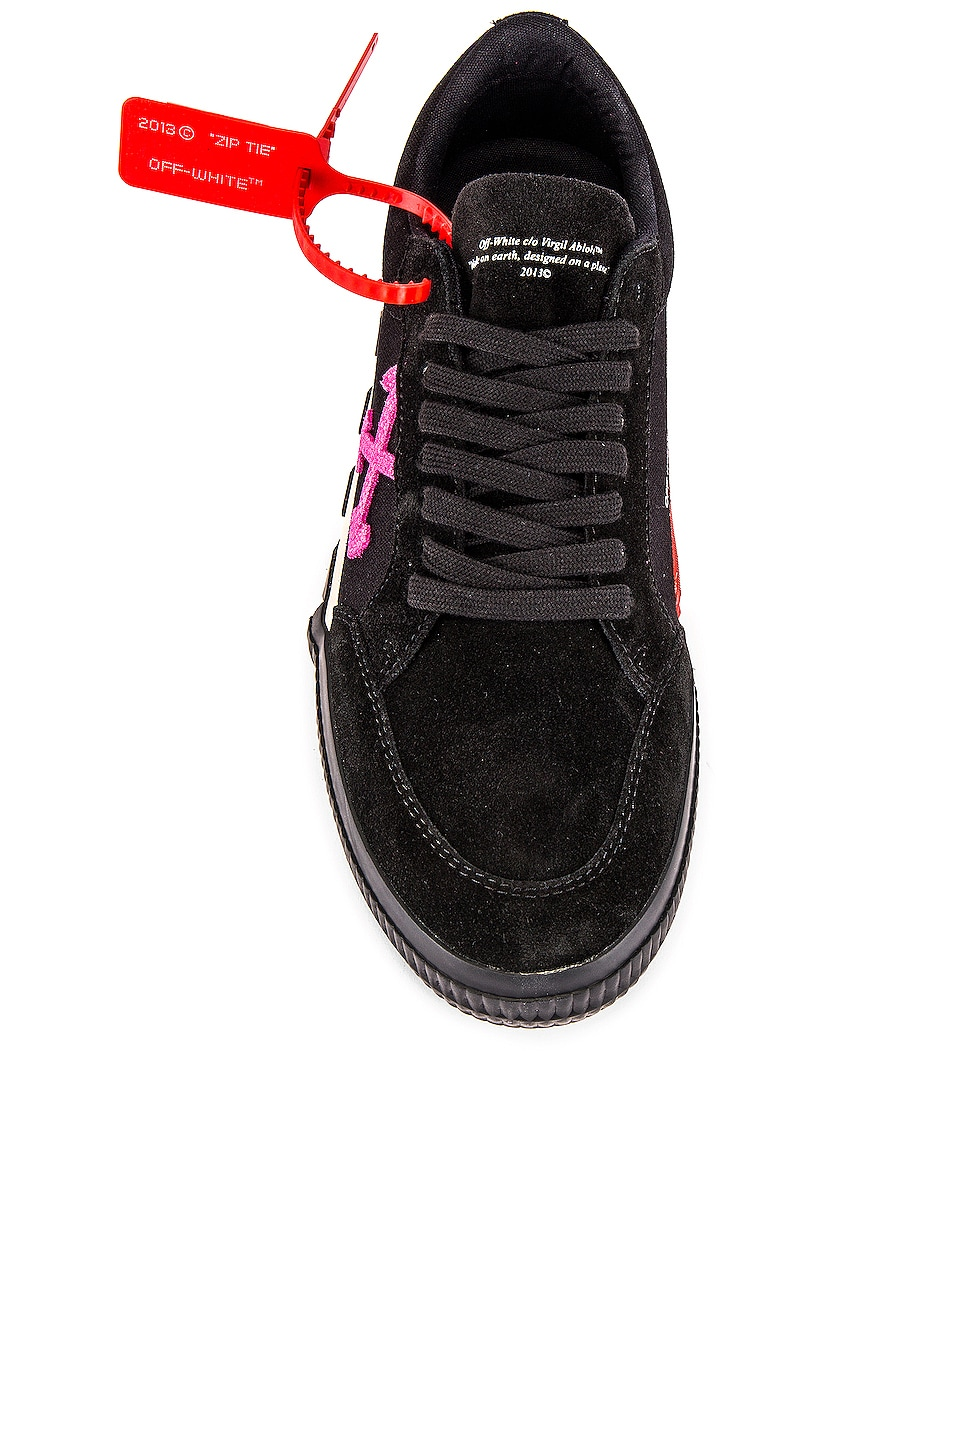 Image 4 of OFF-WHITE Low Vulcanized Sneaker in Black & Fuchsia